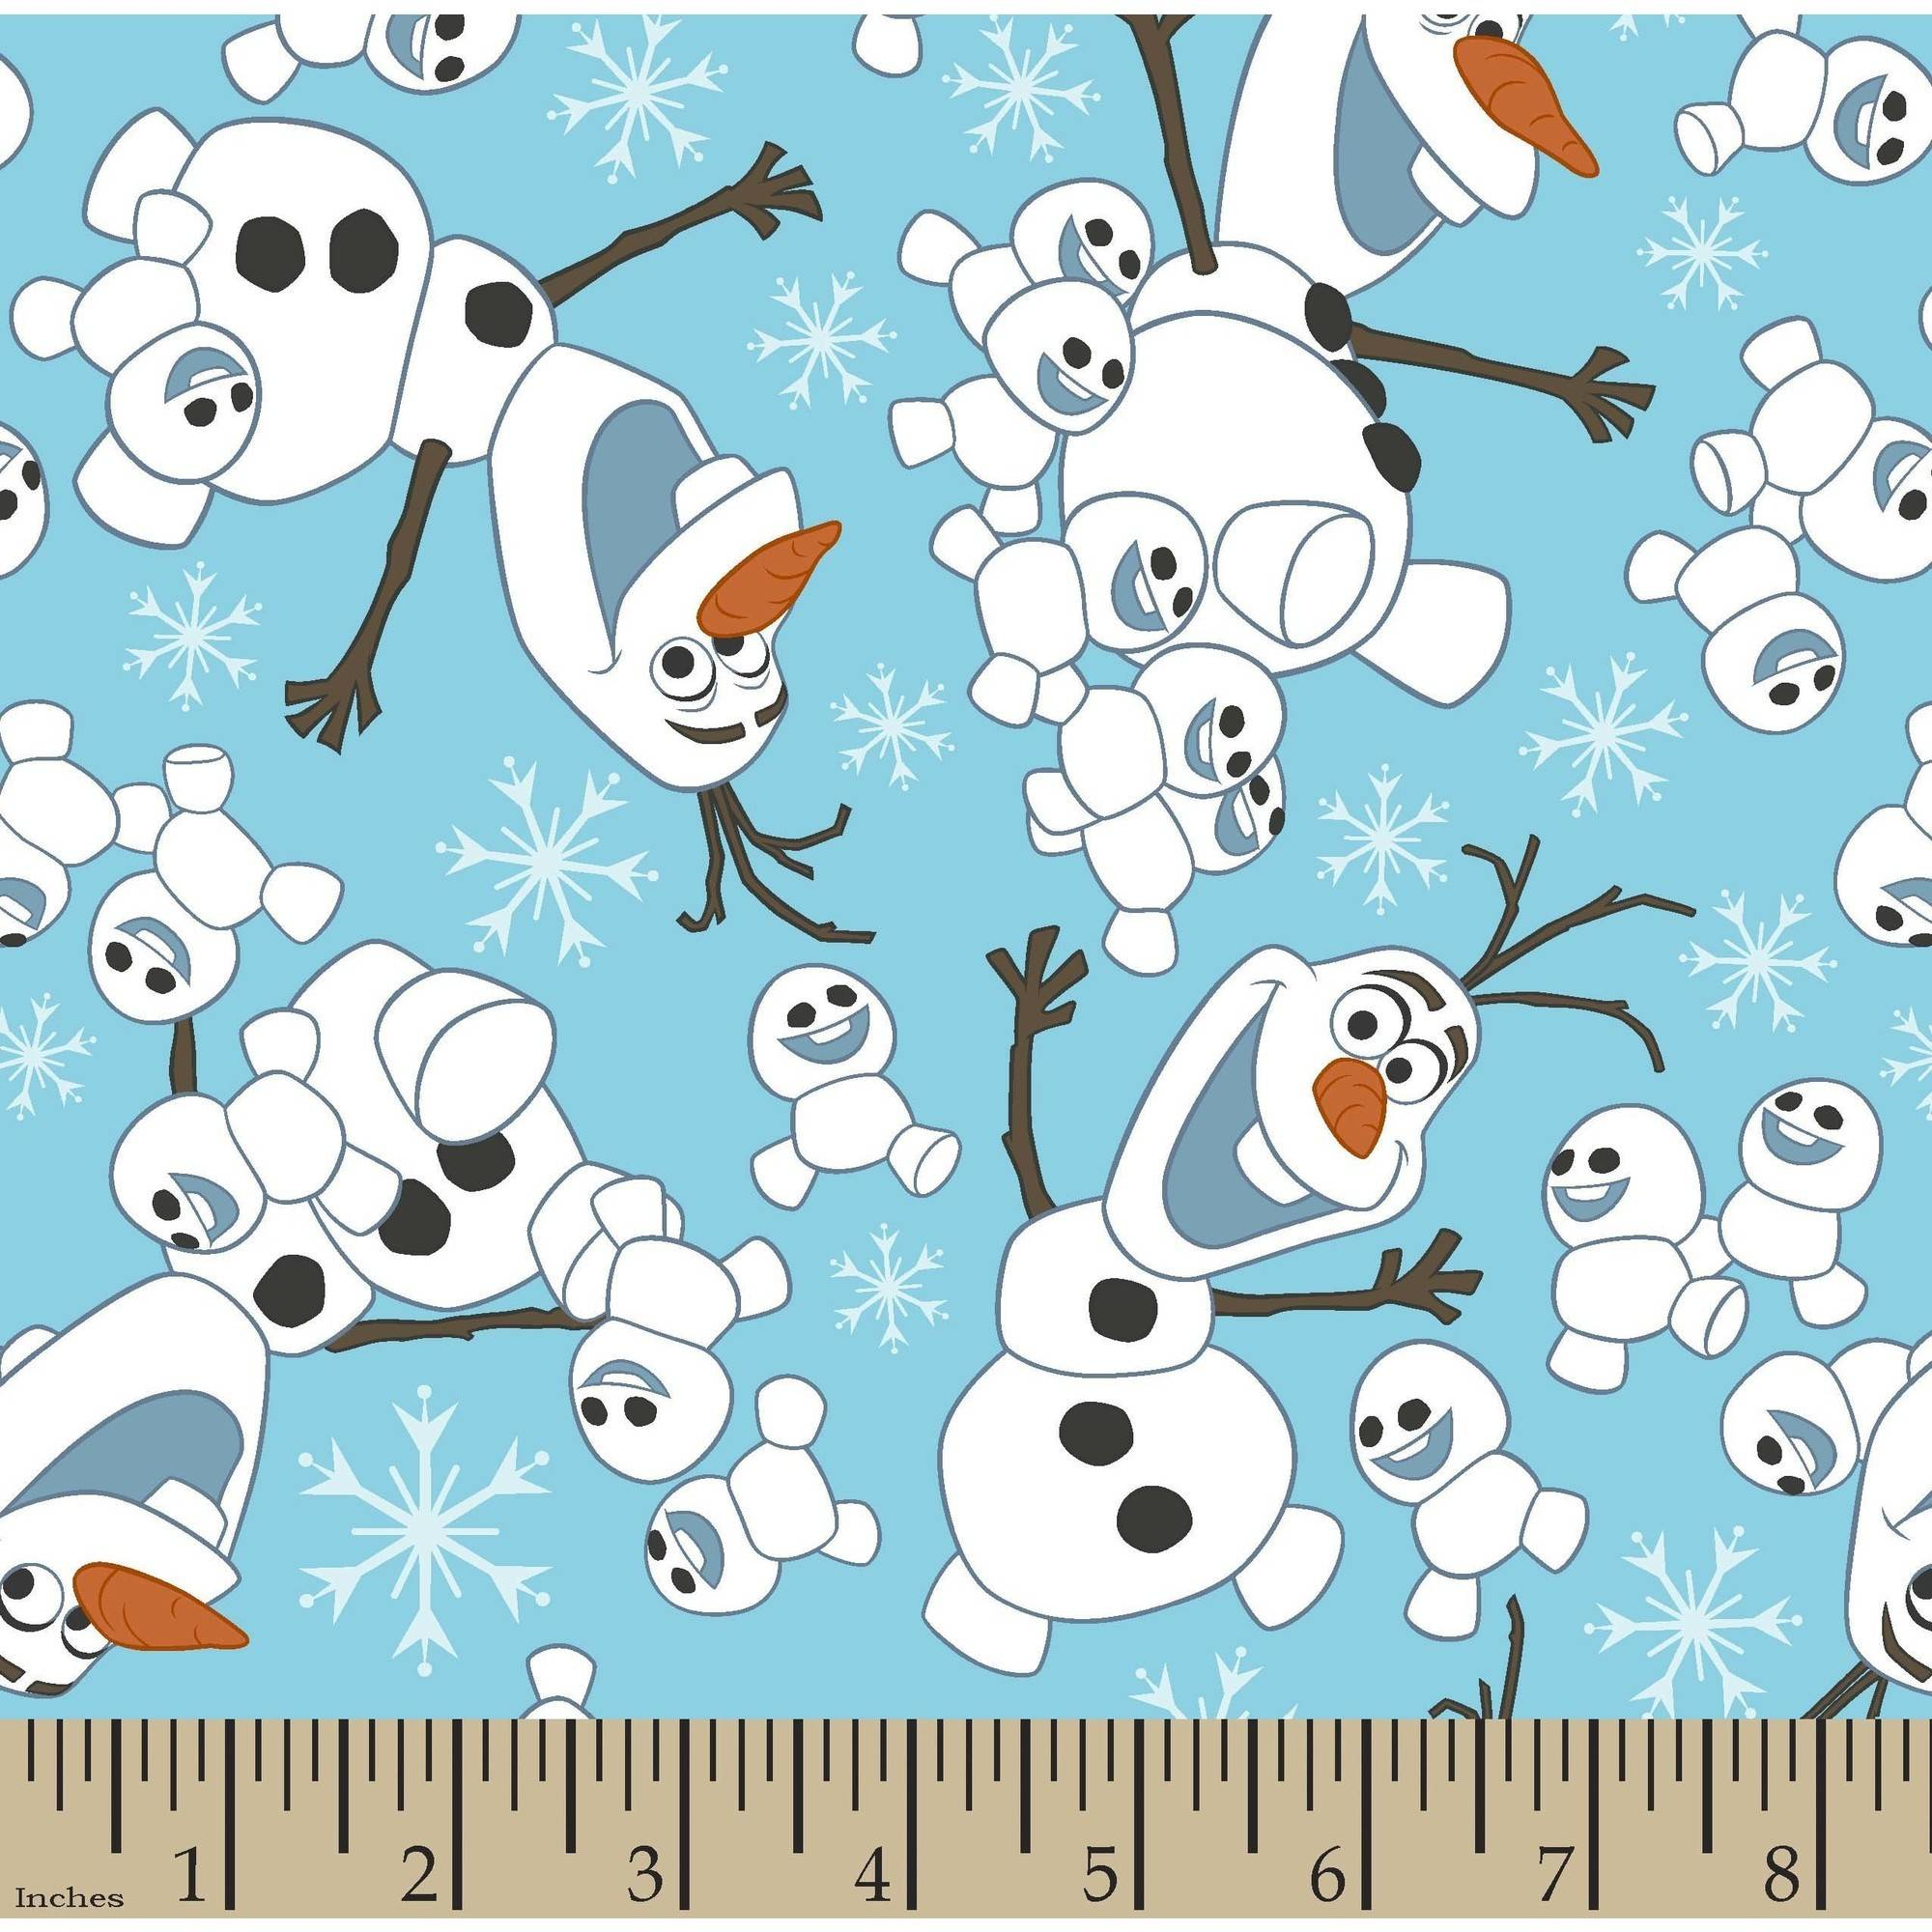 Disney Frozen Fever Olaf Snowman Toss 43/44 Fabric by the Yard